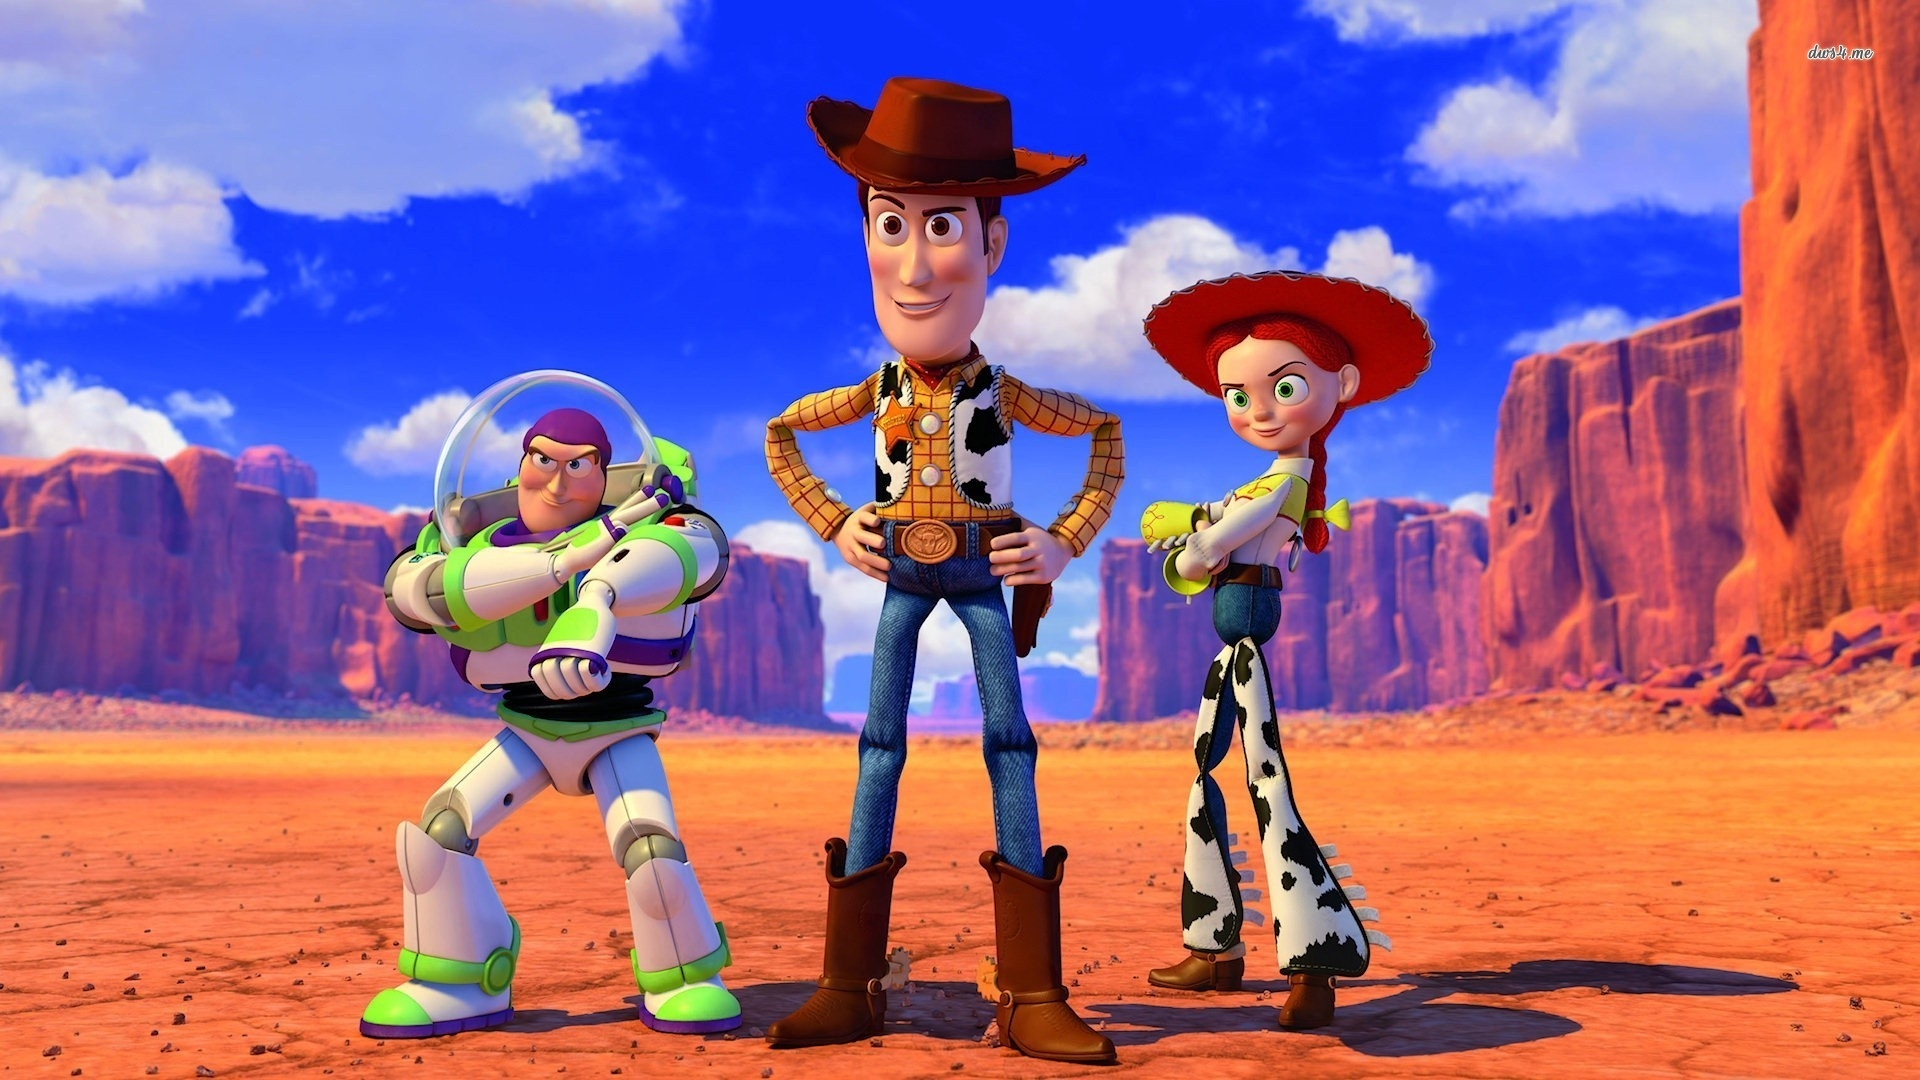 buzz lightyear sheriff woody jessie toy story cartoon wallpaper